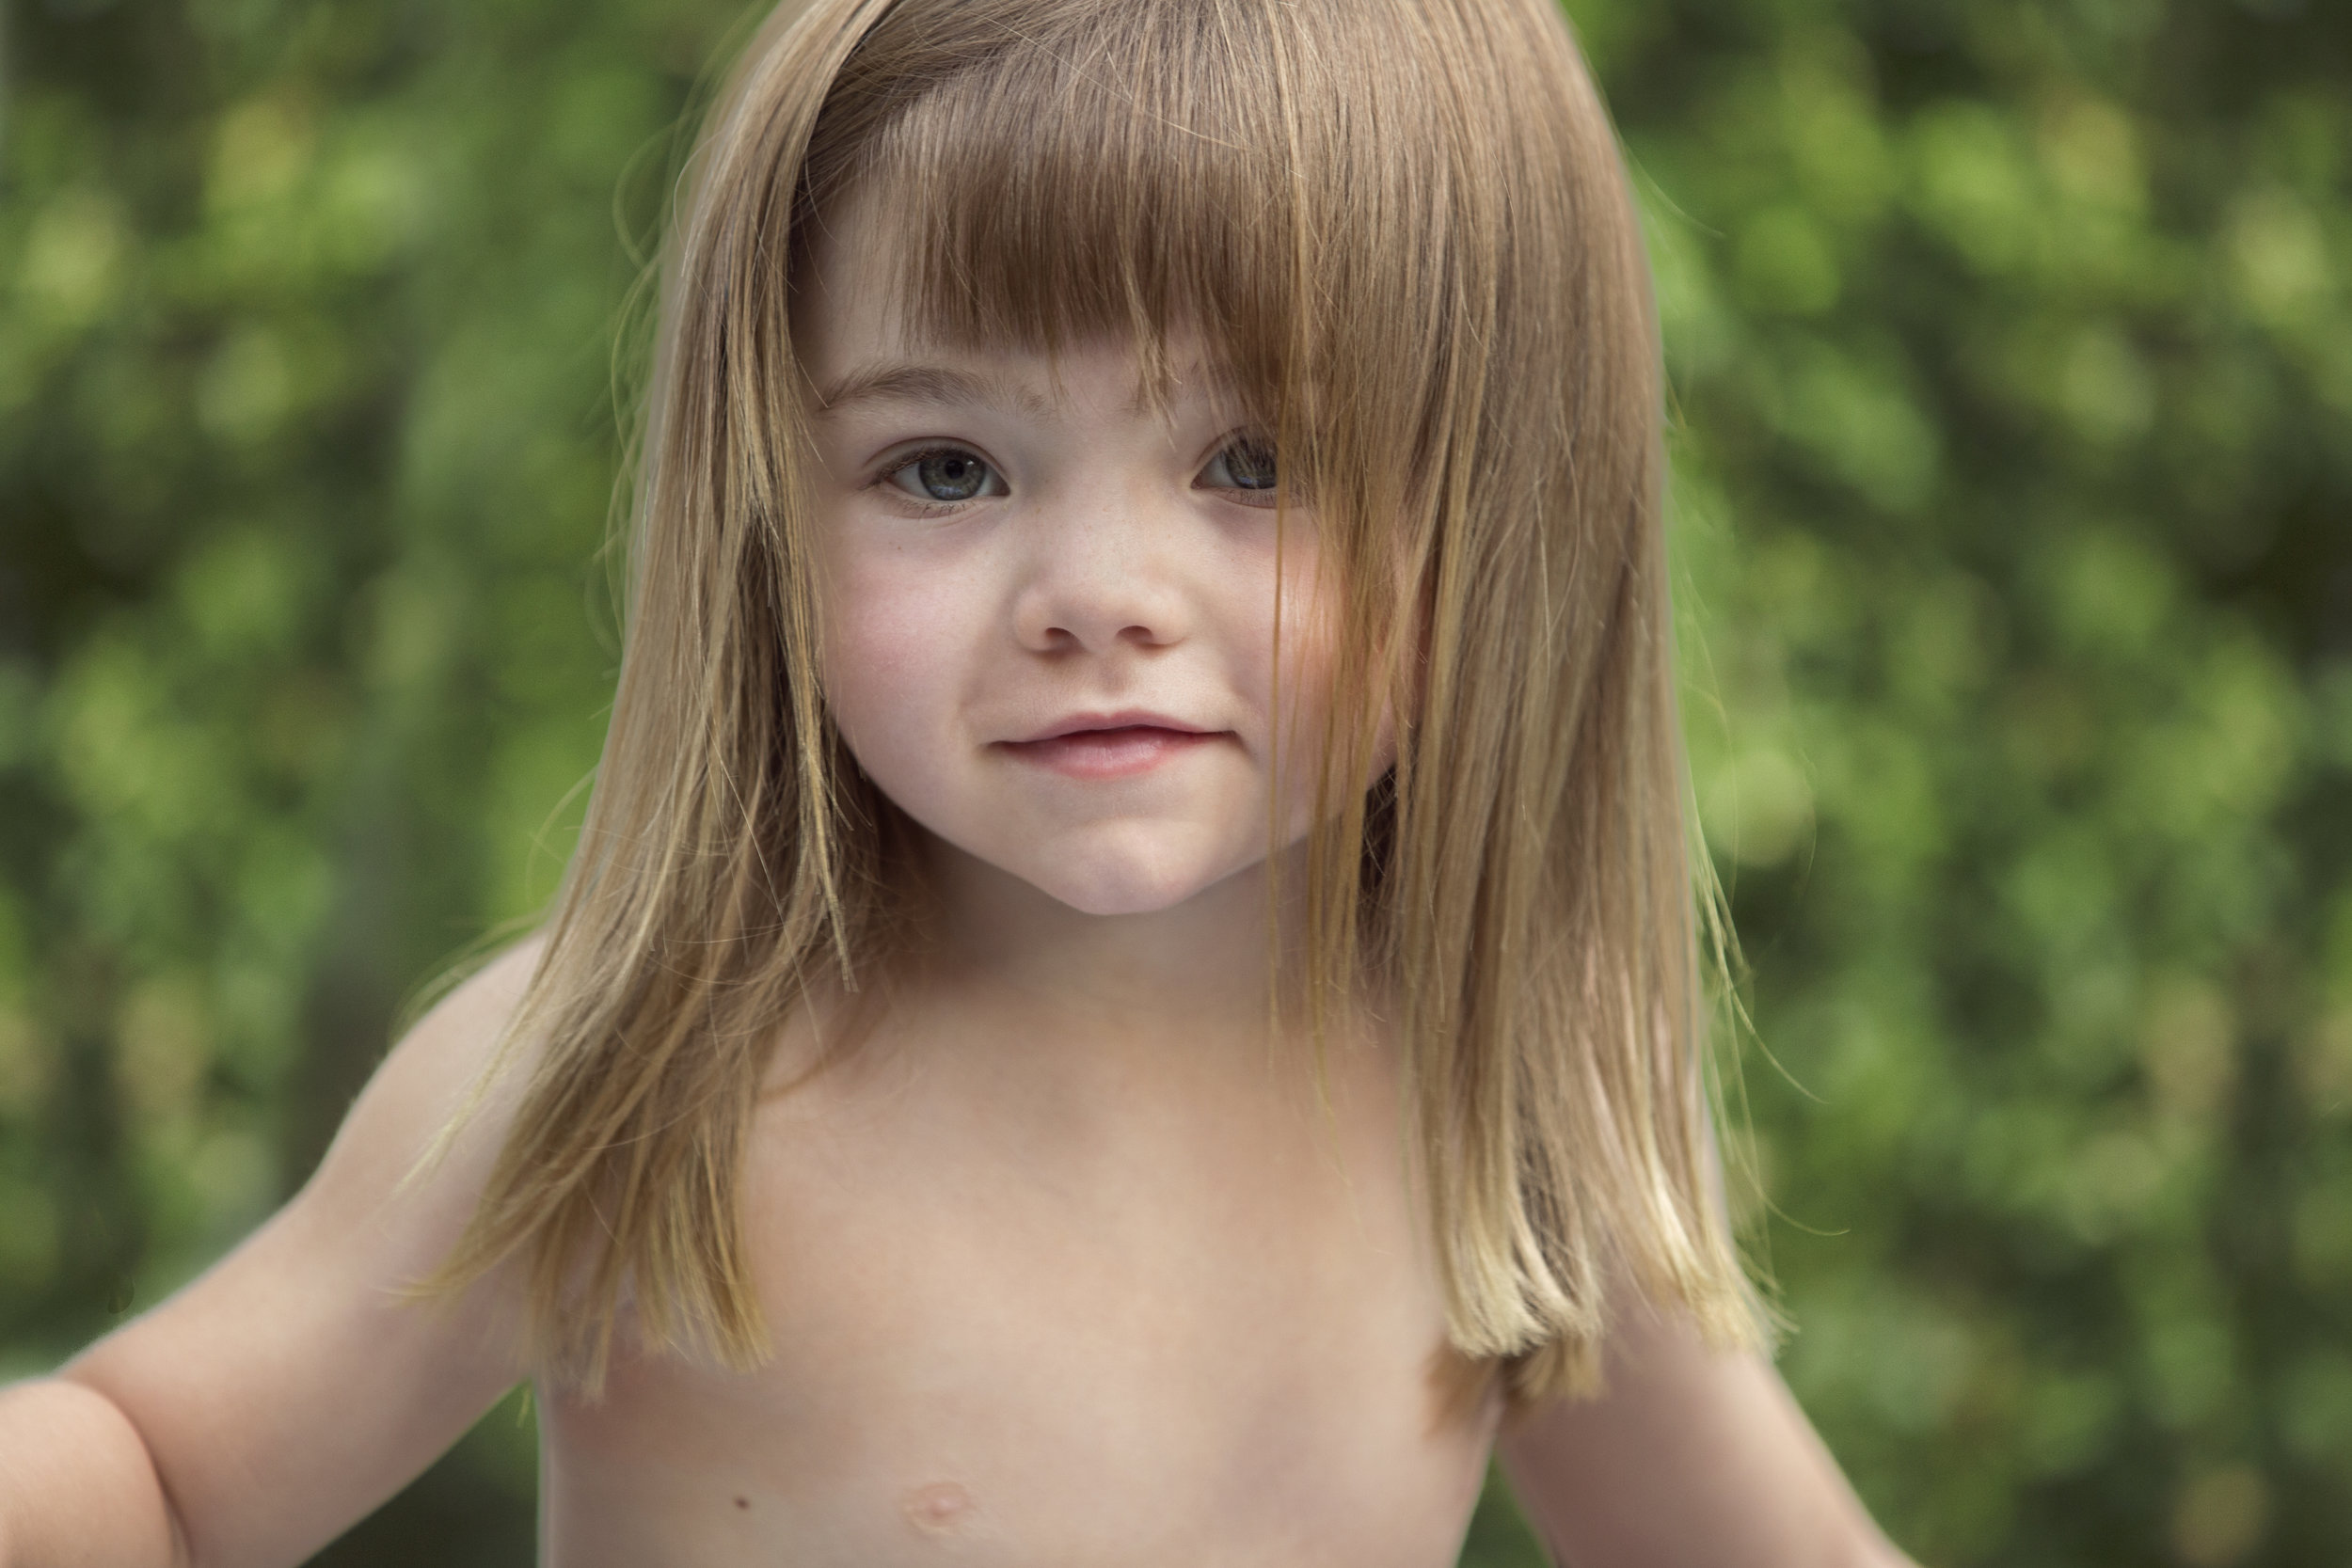 This cute little girl delivers a soulful look into the lens. Photo by Lucille Khornak.